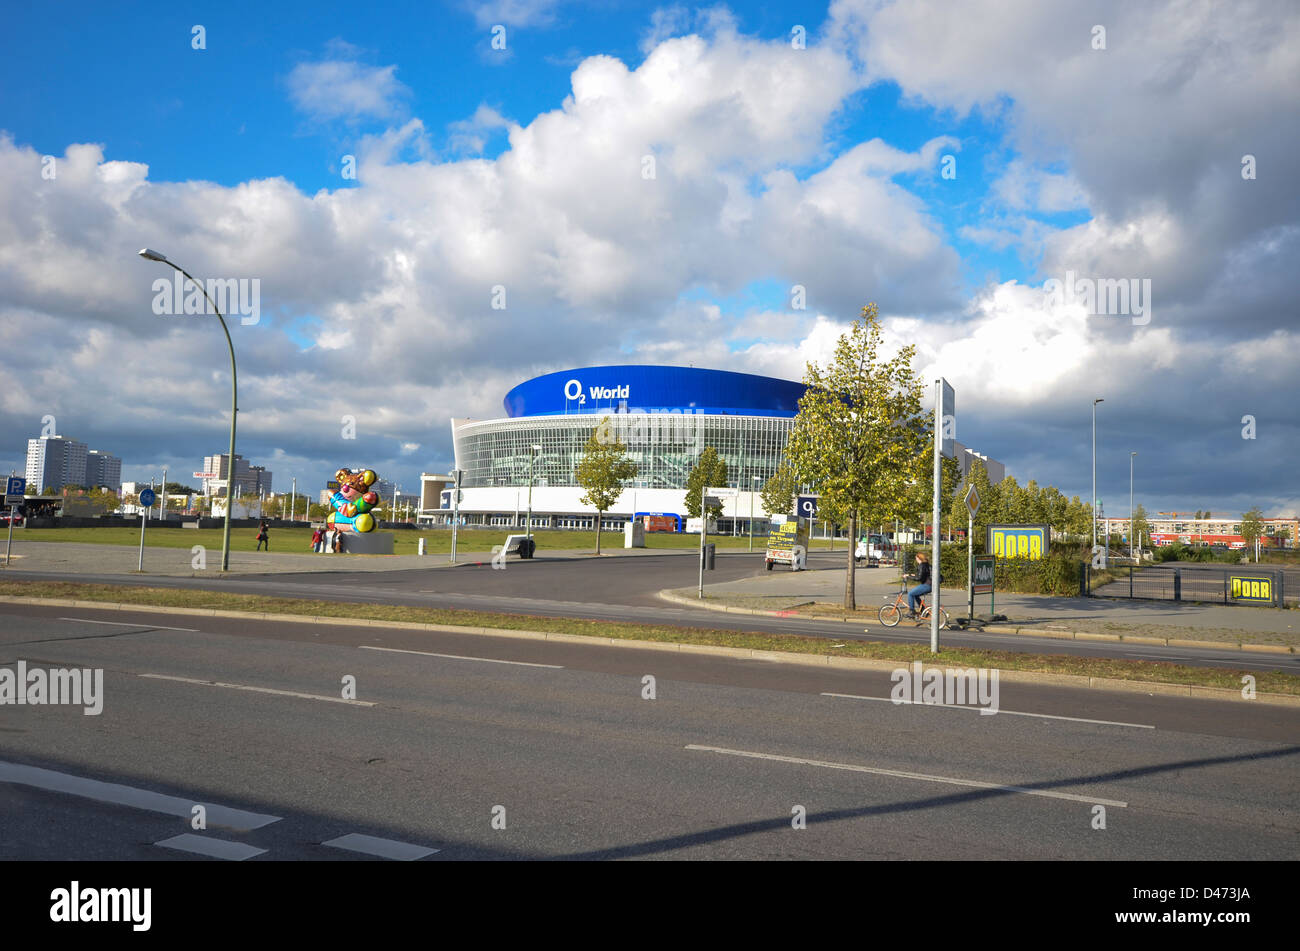 The O2 World Arena, Berlin, Germany - Stock Image